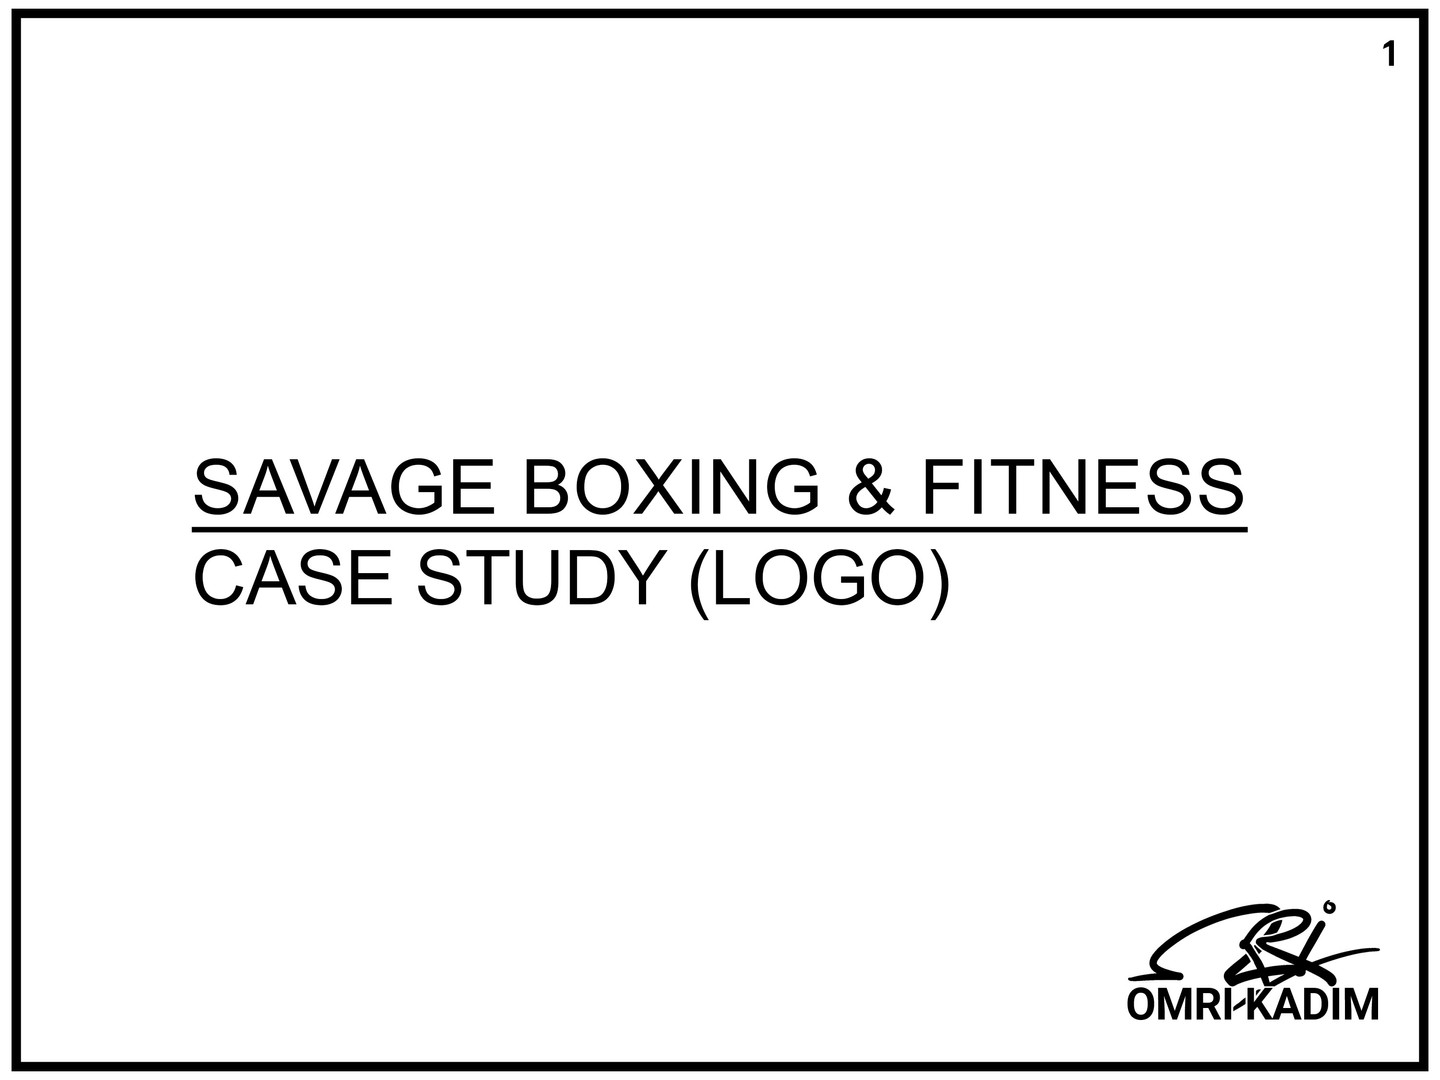 Savage Boxing Case Study_1.jpg